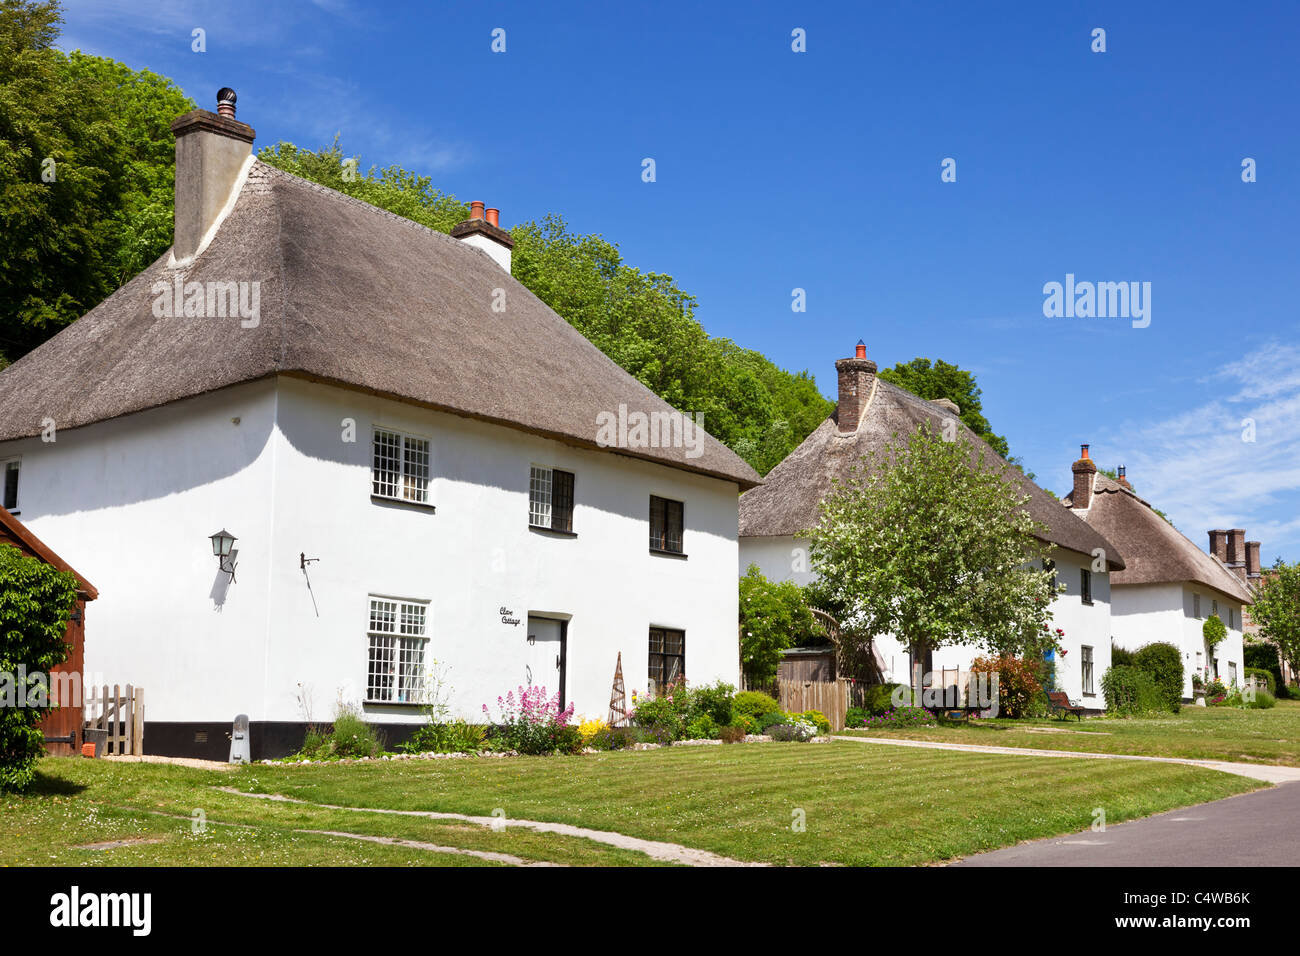 Row of detached thatched cottages, Milton Abbas, Dorset, England, UK - Stock Image